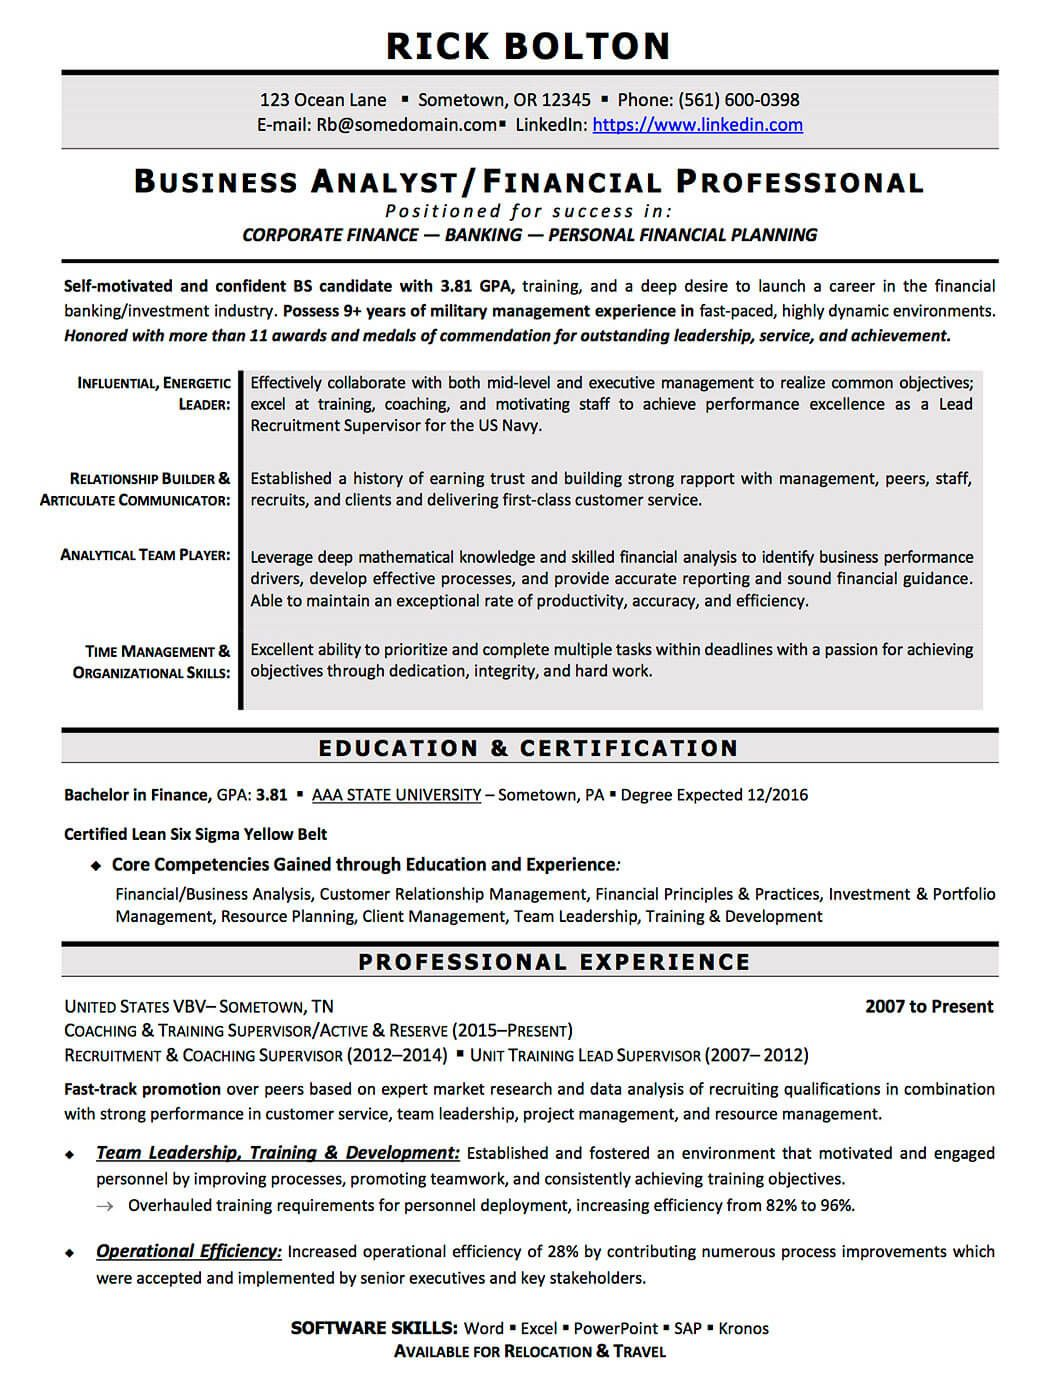 resume examples cv sample resume templates rso resumes 3 military transition to business analyst